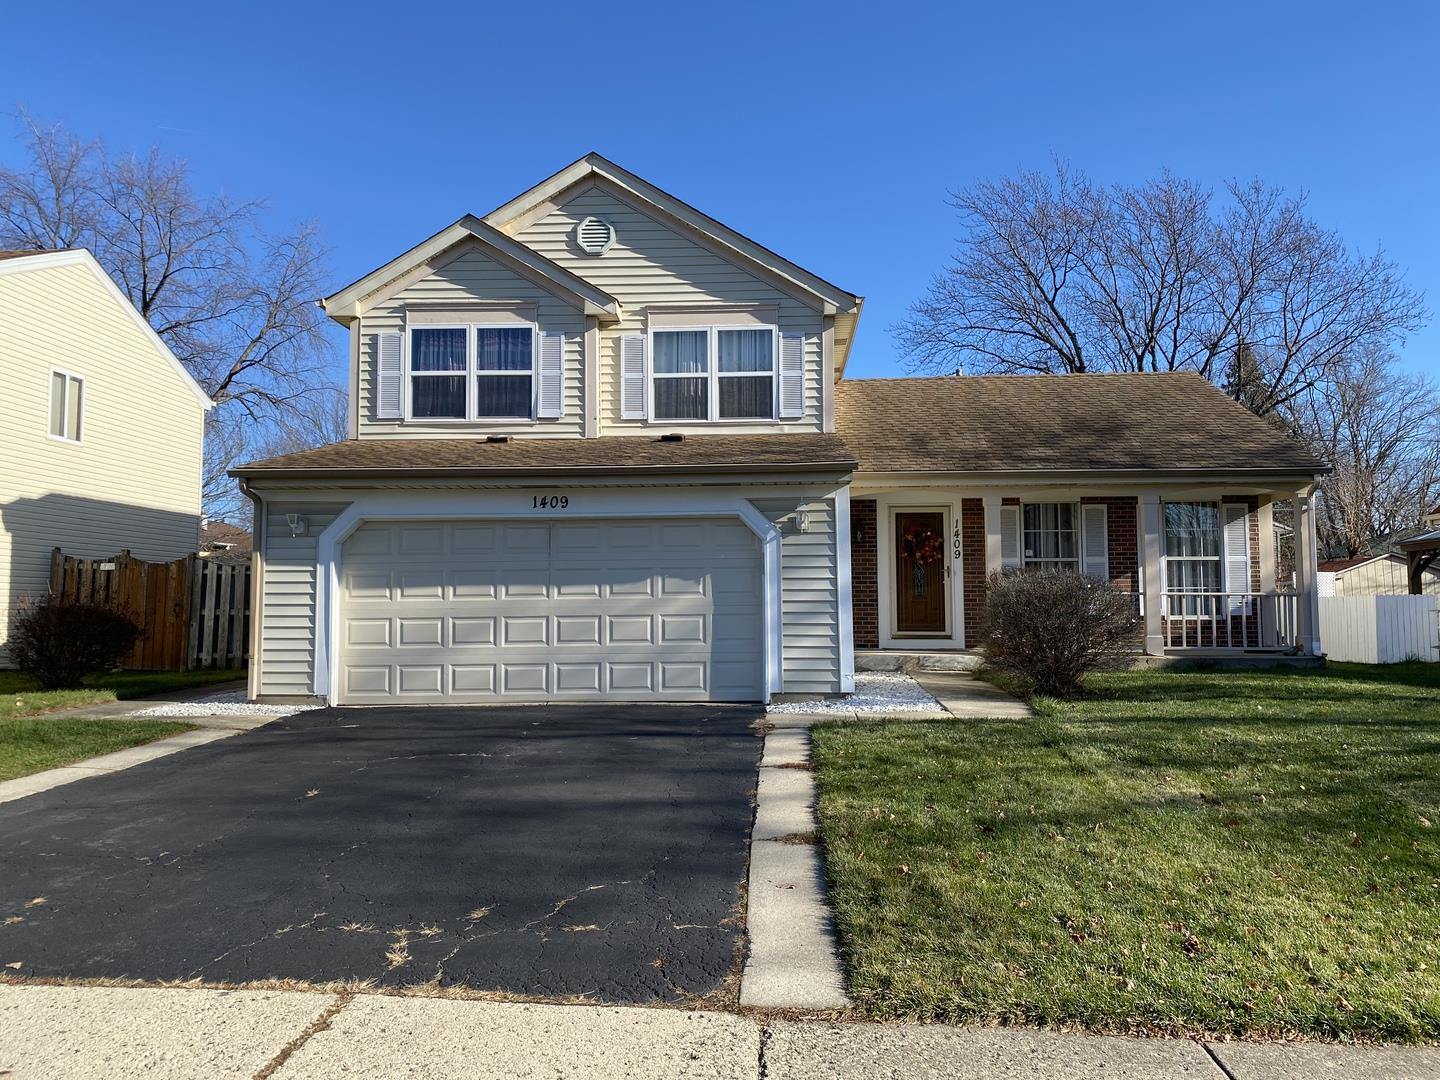 1409 PRESIDENT Street, Glendale Heights, IL 60139 - #: 11003167